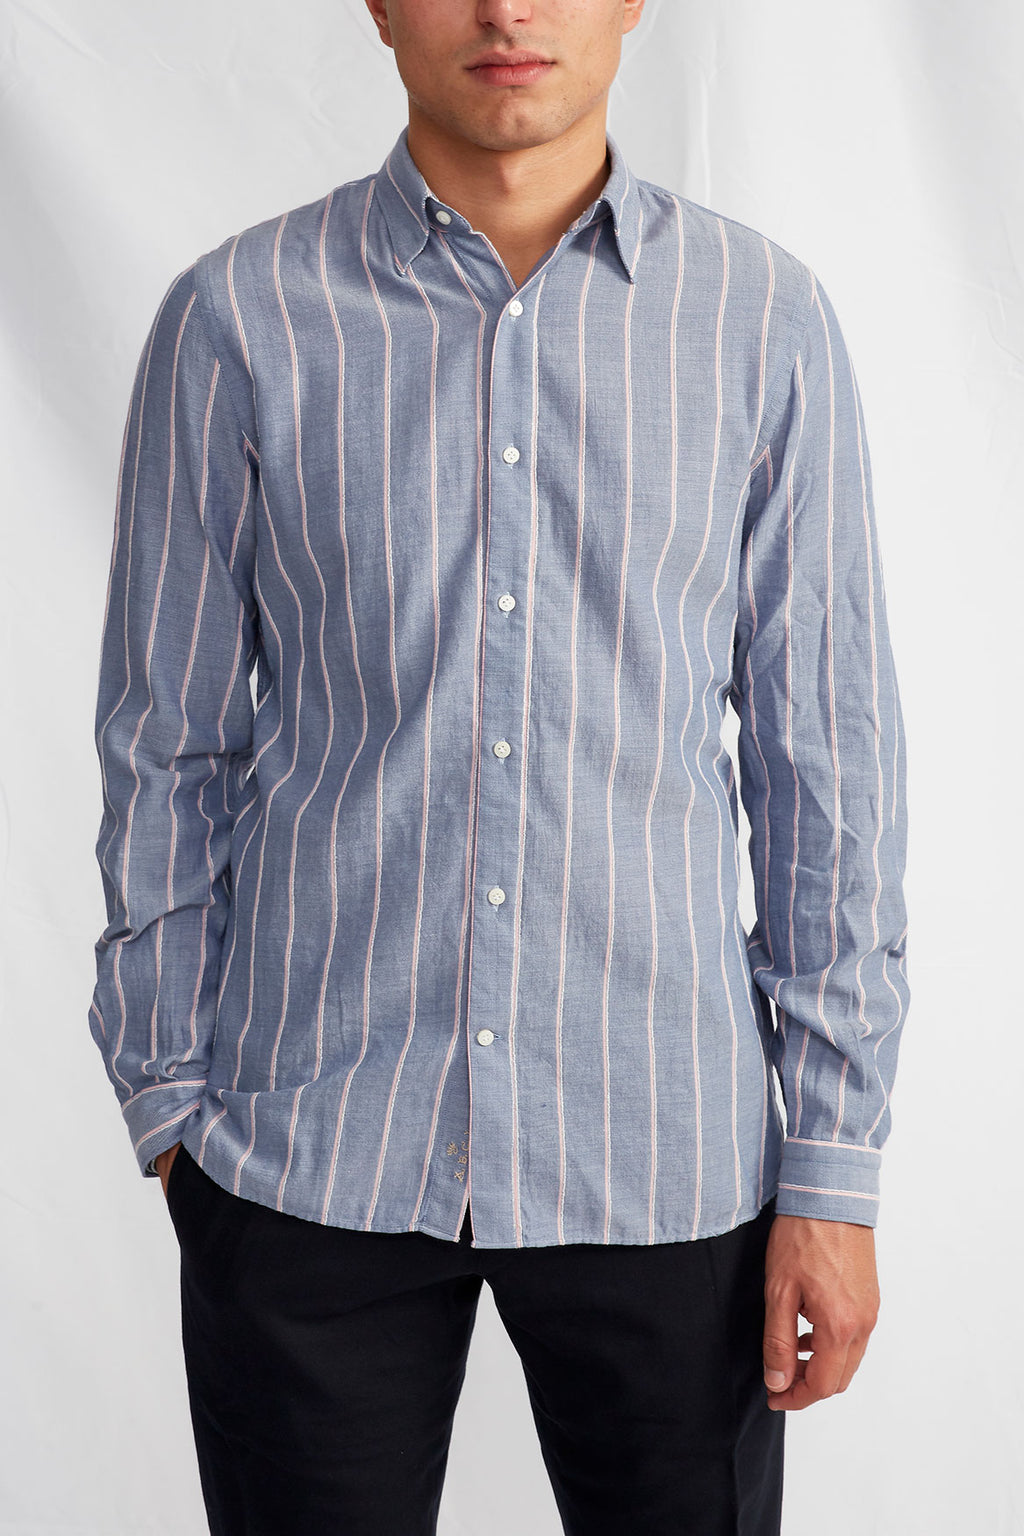 Liberty boucle stripe oxford 0208